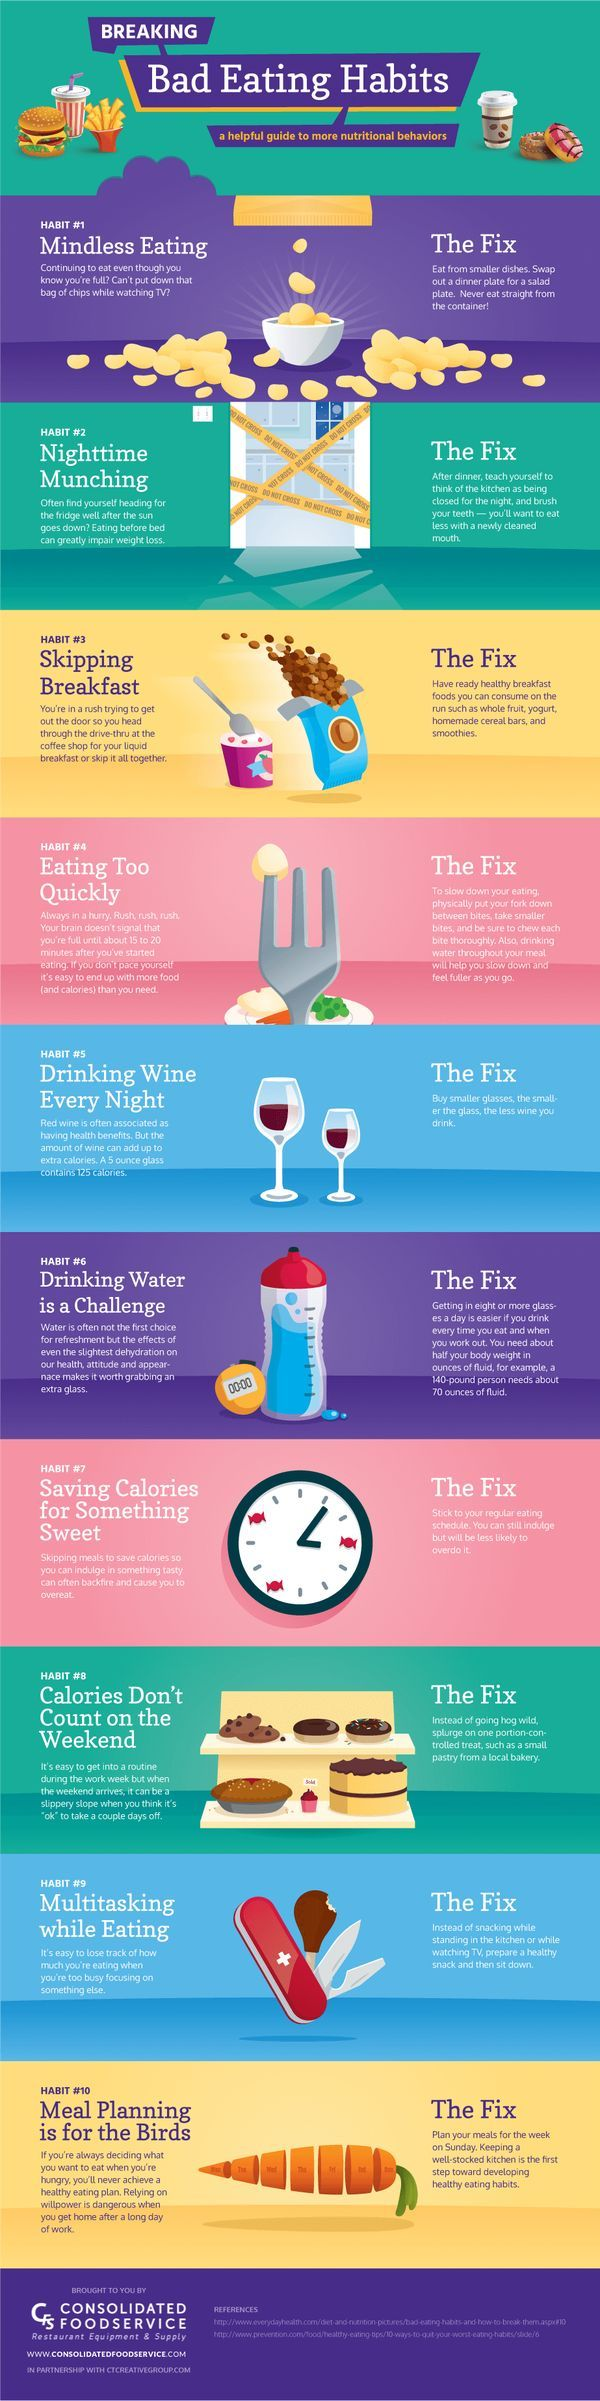 Want some tips on creating healthy eating habits? This handy guide offers some great tips on breaking your old eating habits and how to create new, healthier habits!